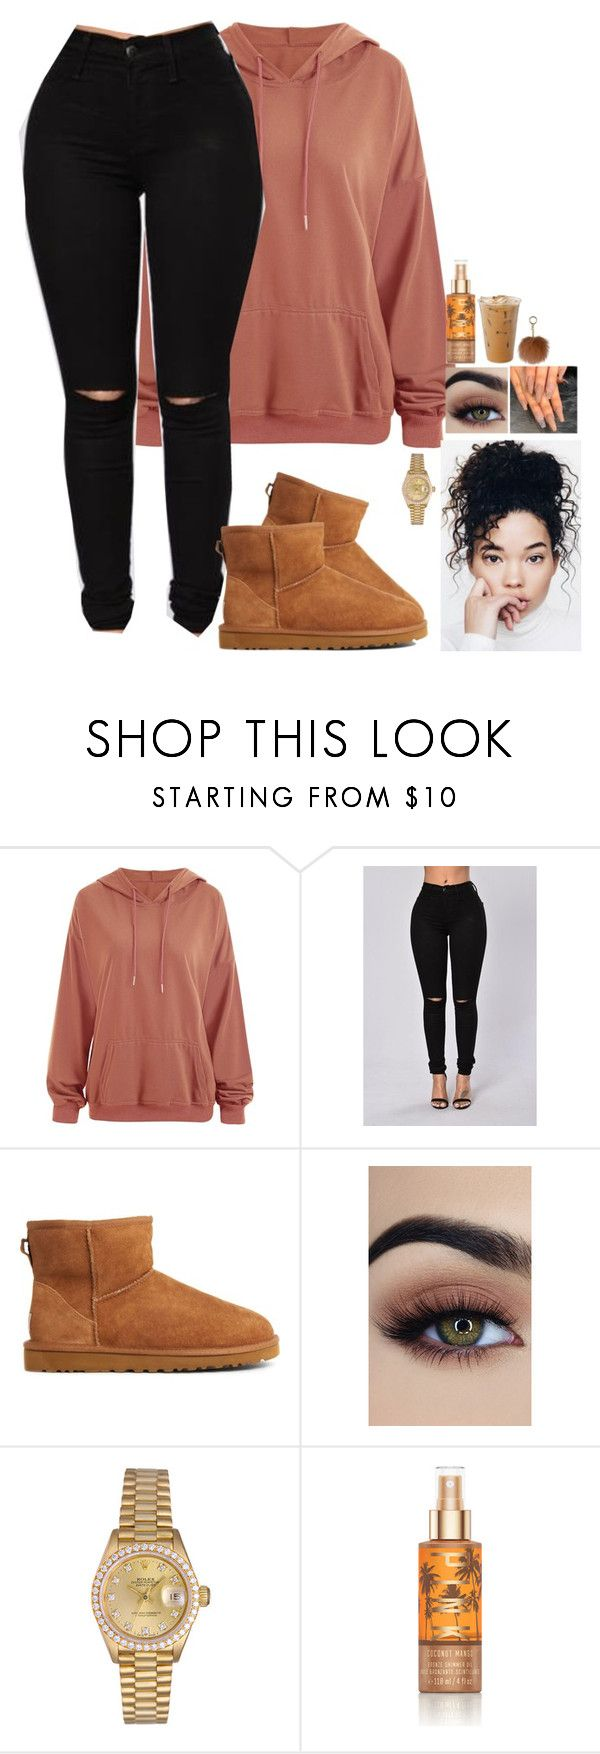 """Untitled #736"" by bosslanaia ❤ liked on Polyvore featuring UGG Australia, Rolex, Victoria's Secret and MICHAEL Michael Kors"